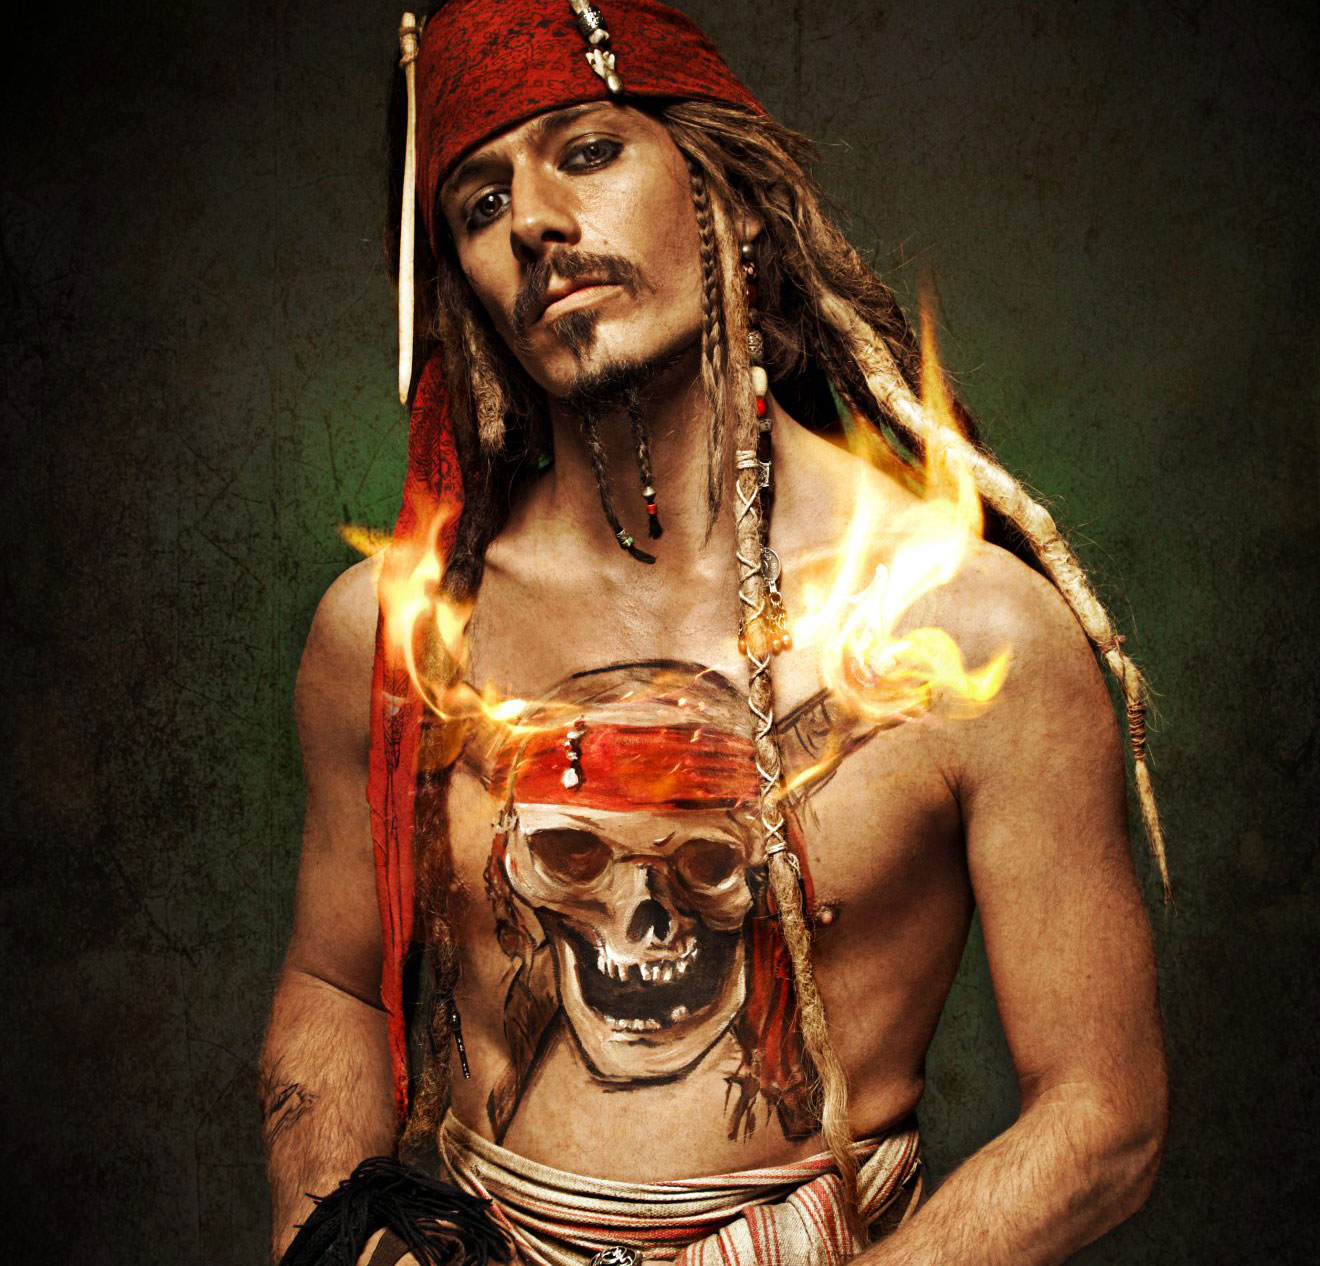 the life of a captain jack sparrow lookalike: a day in the life of a